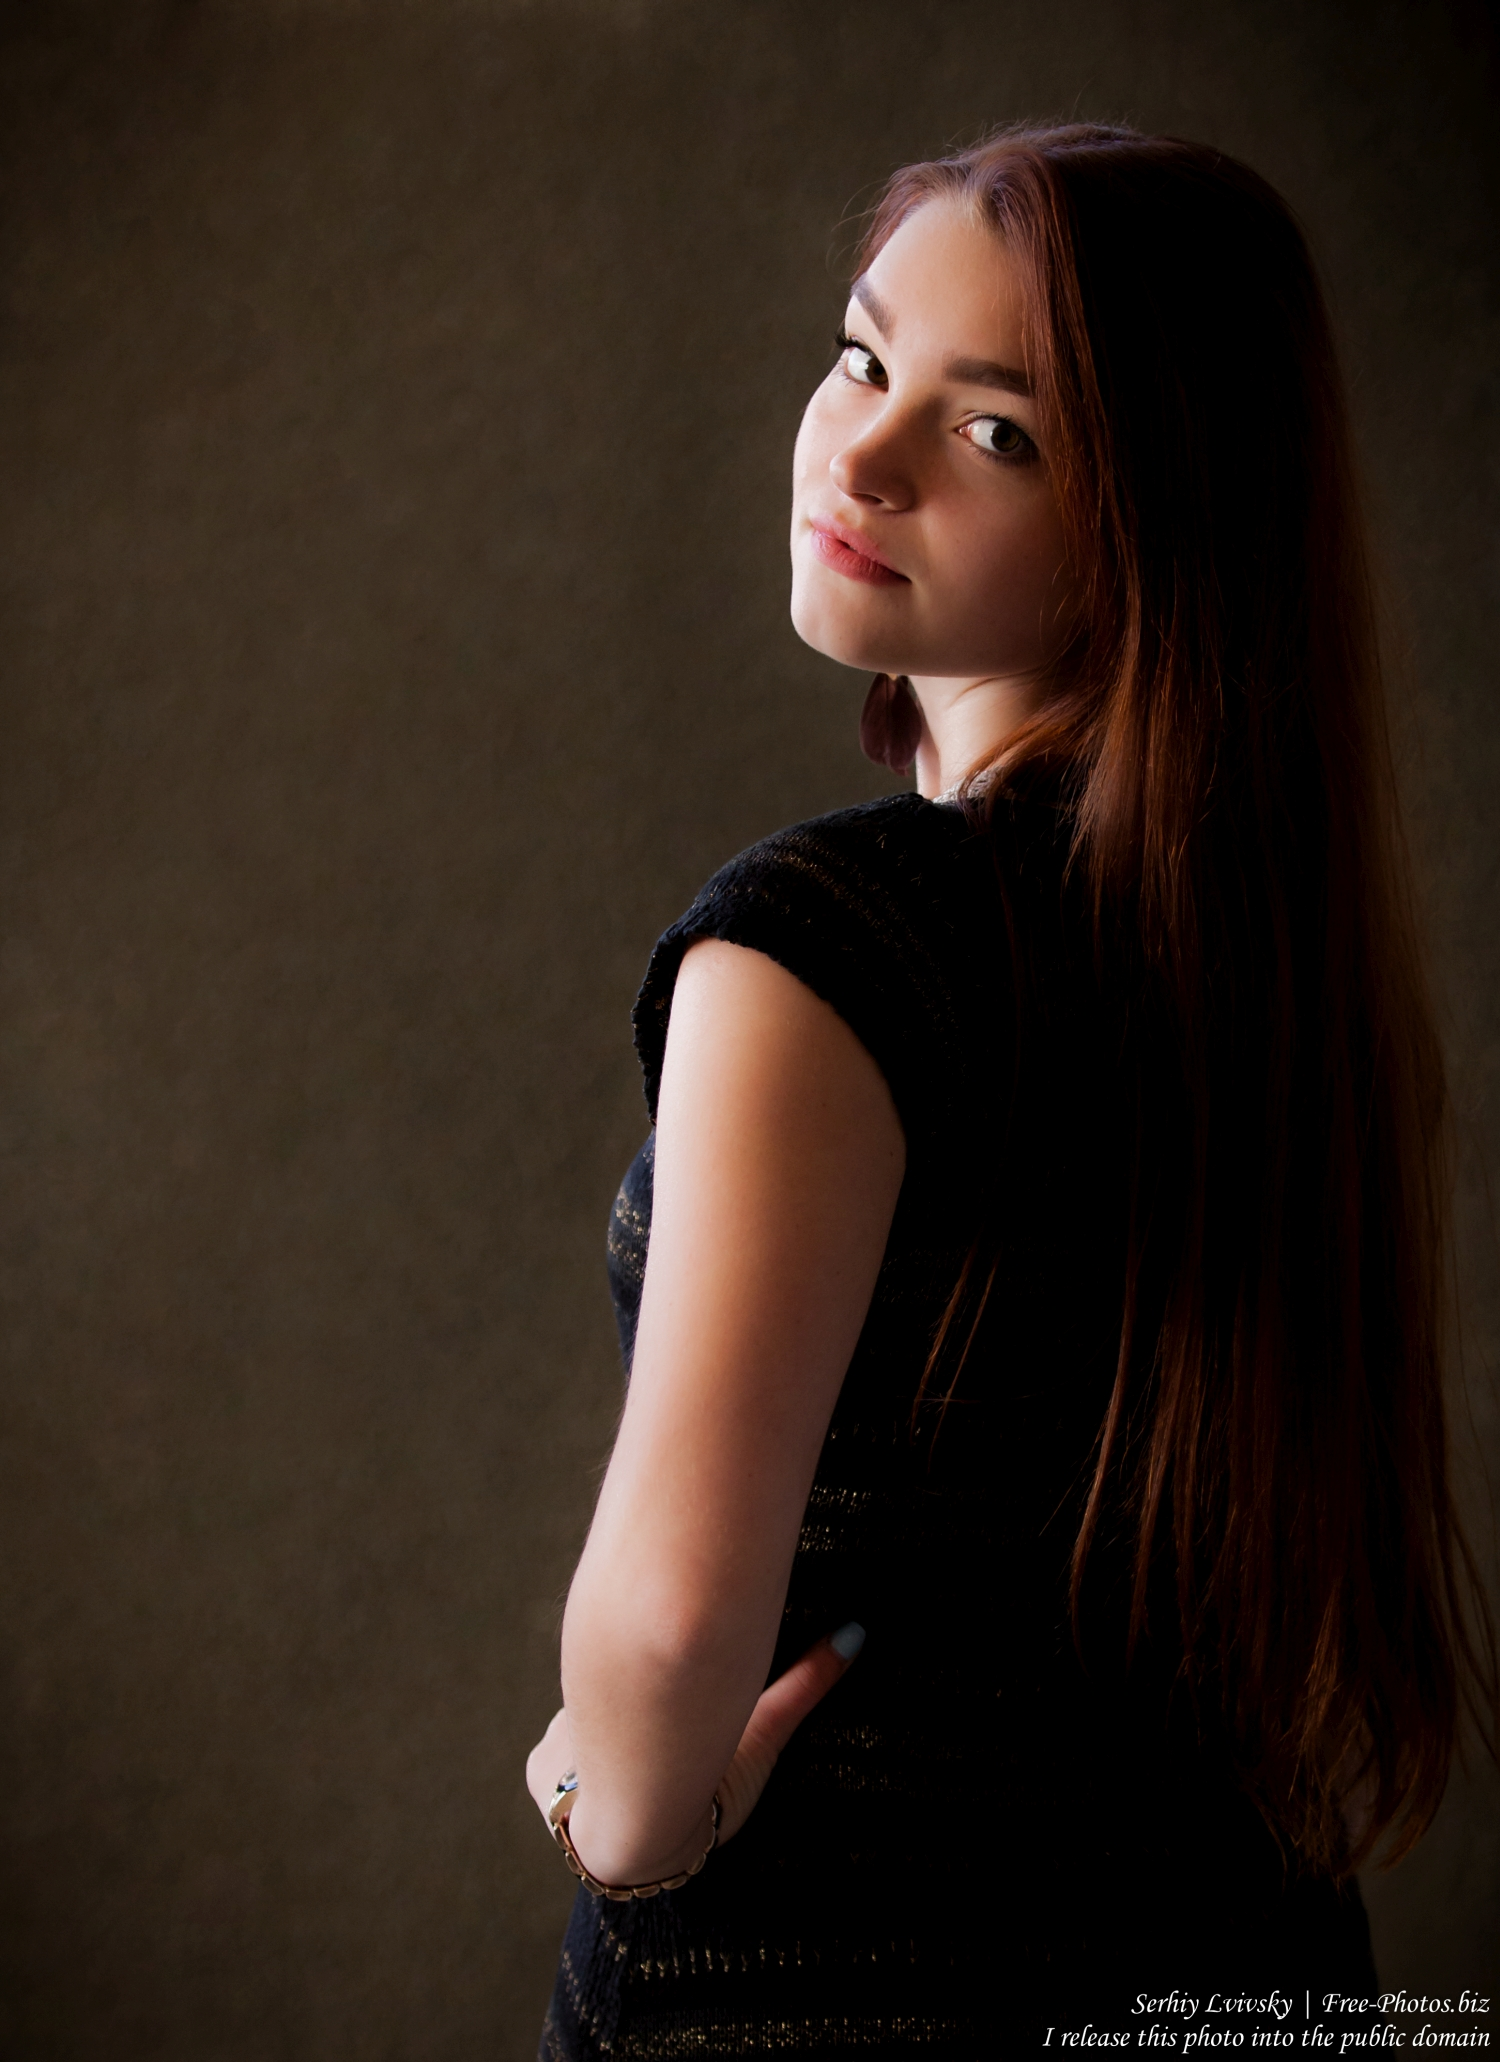 an_18-year-old_girl_photographed_by_serhiy_lvivsky_in_oct_2015_12